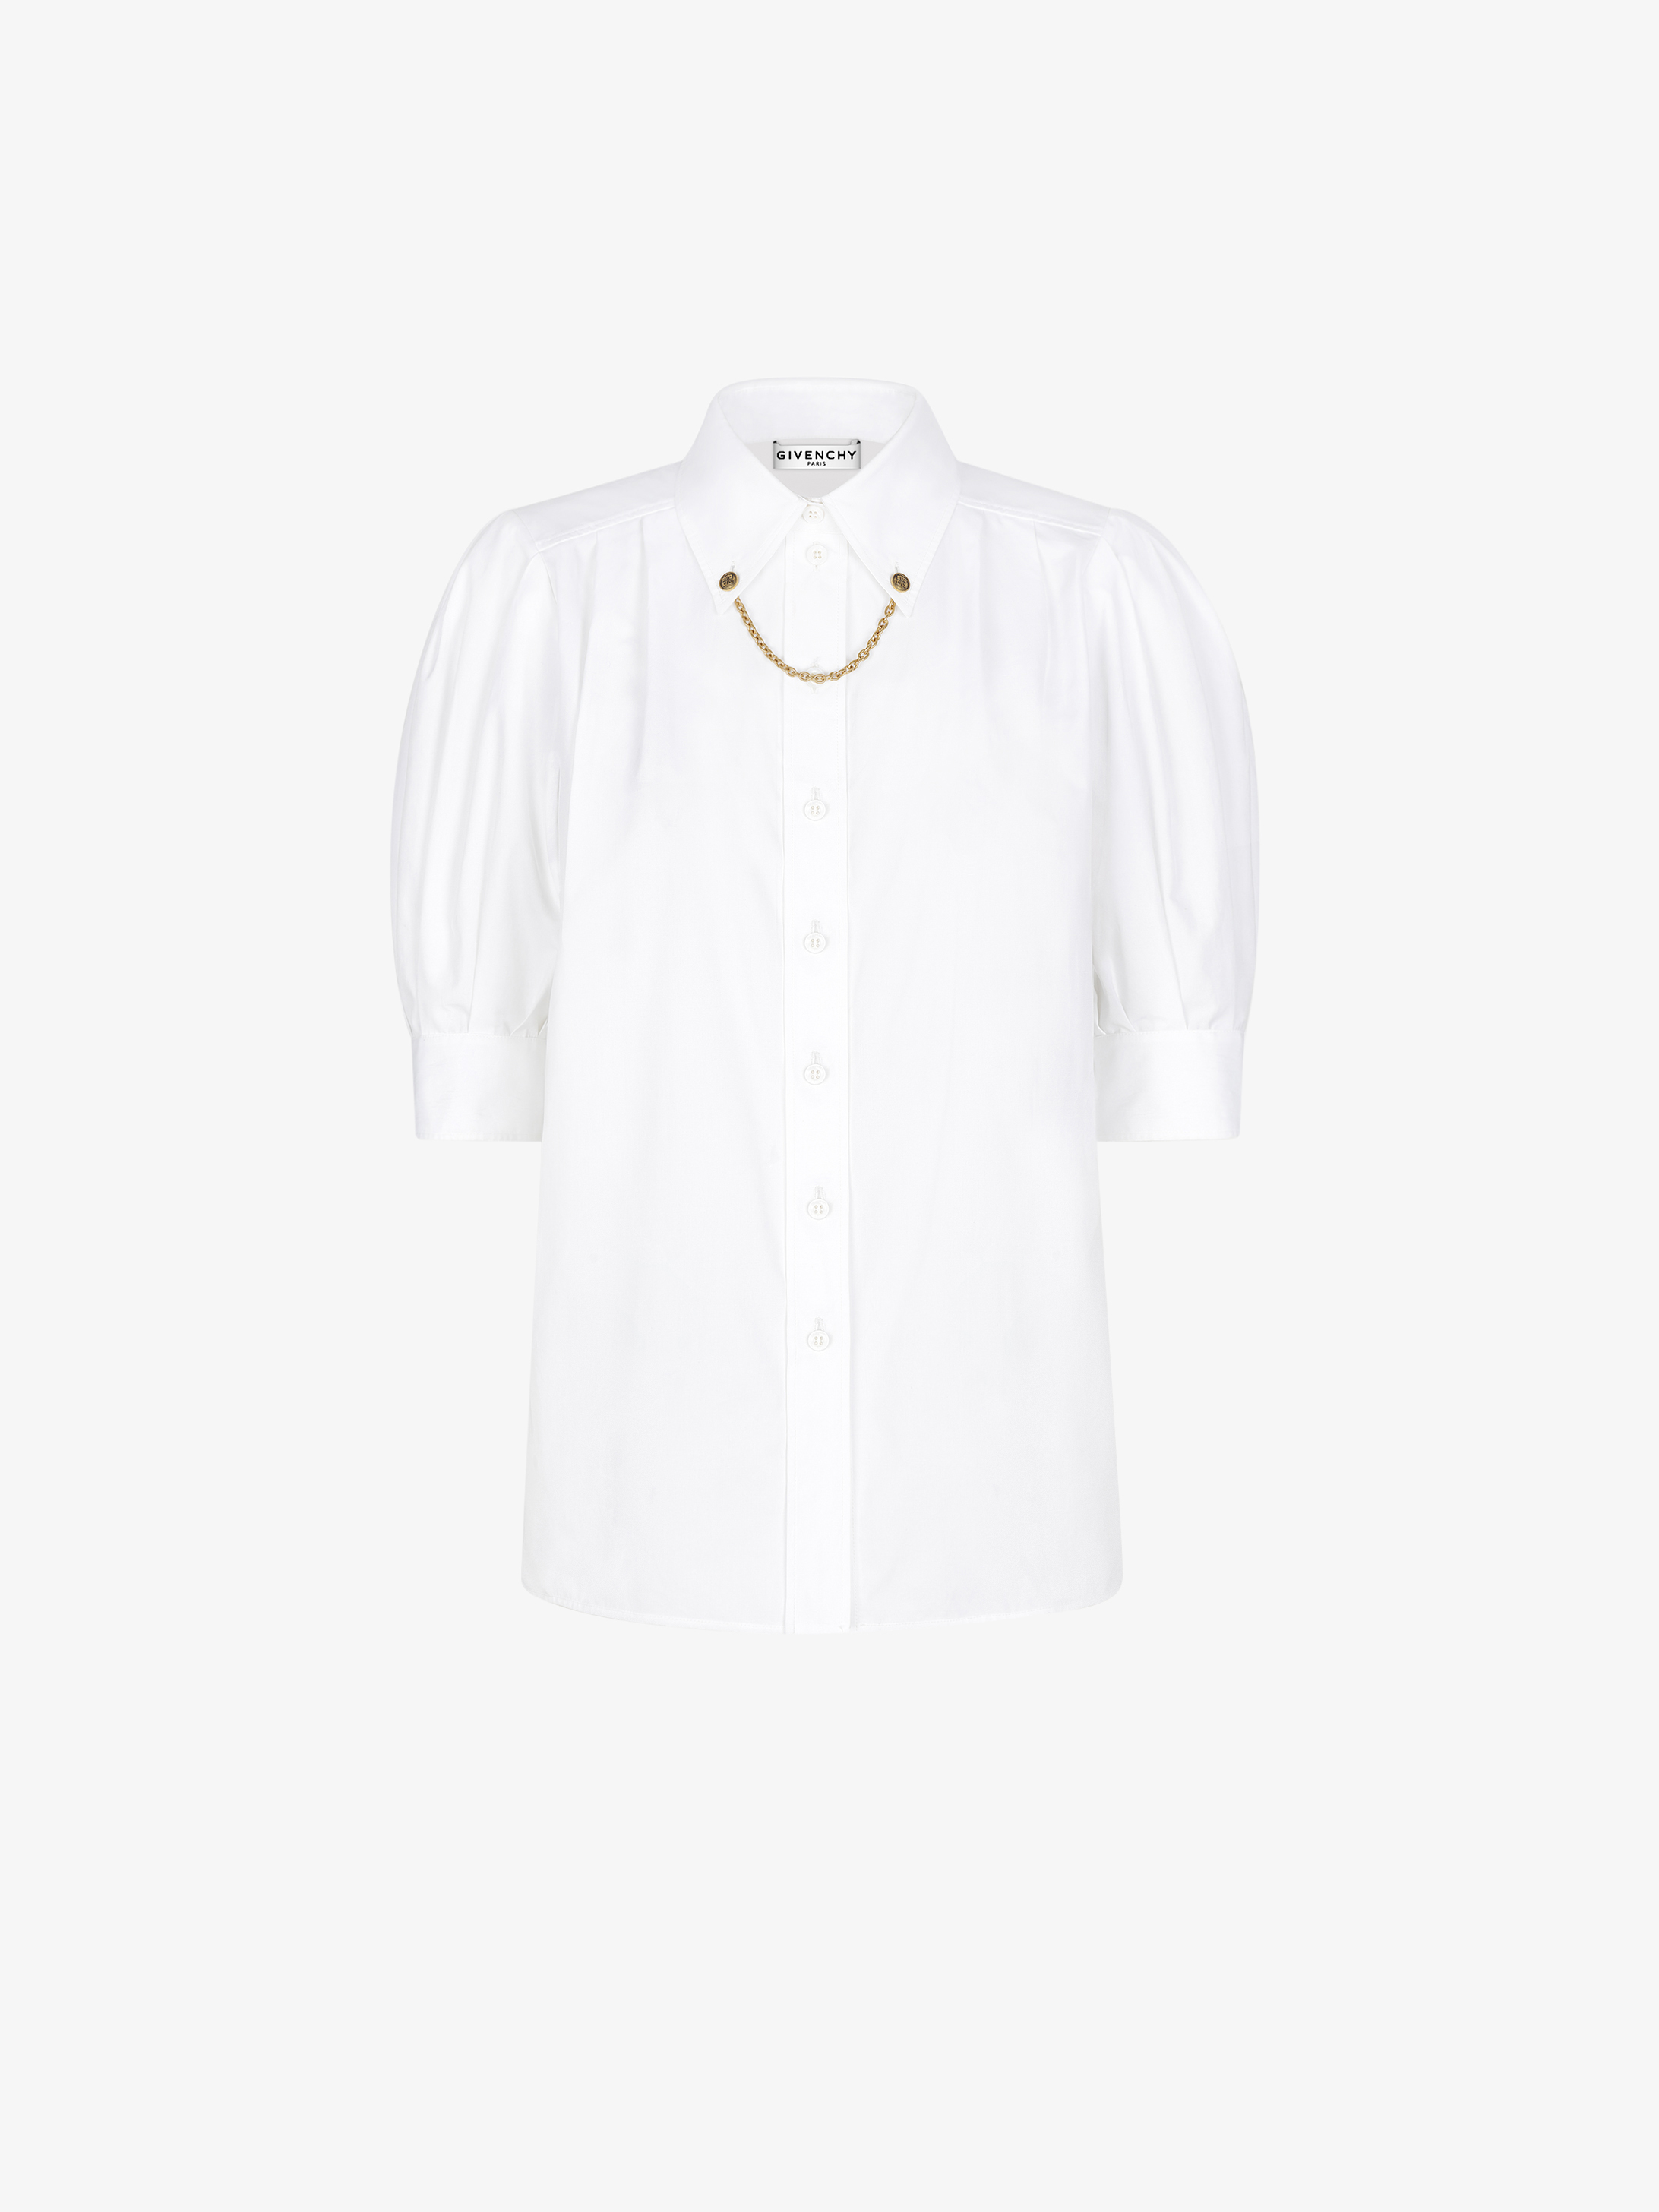 Shirt in cotton with chain collar